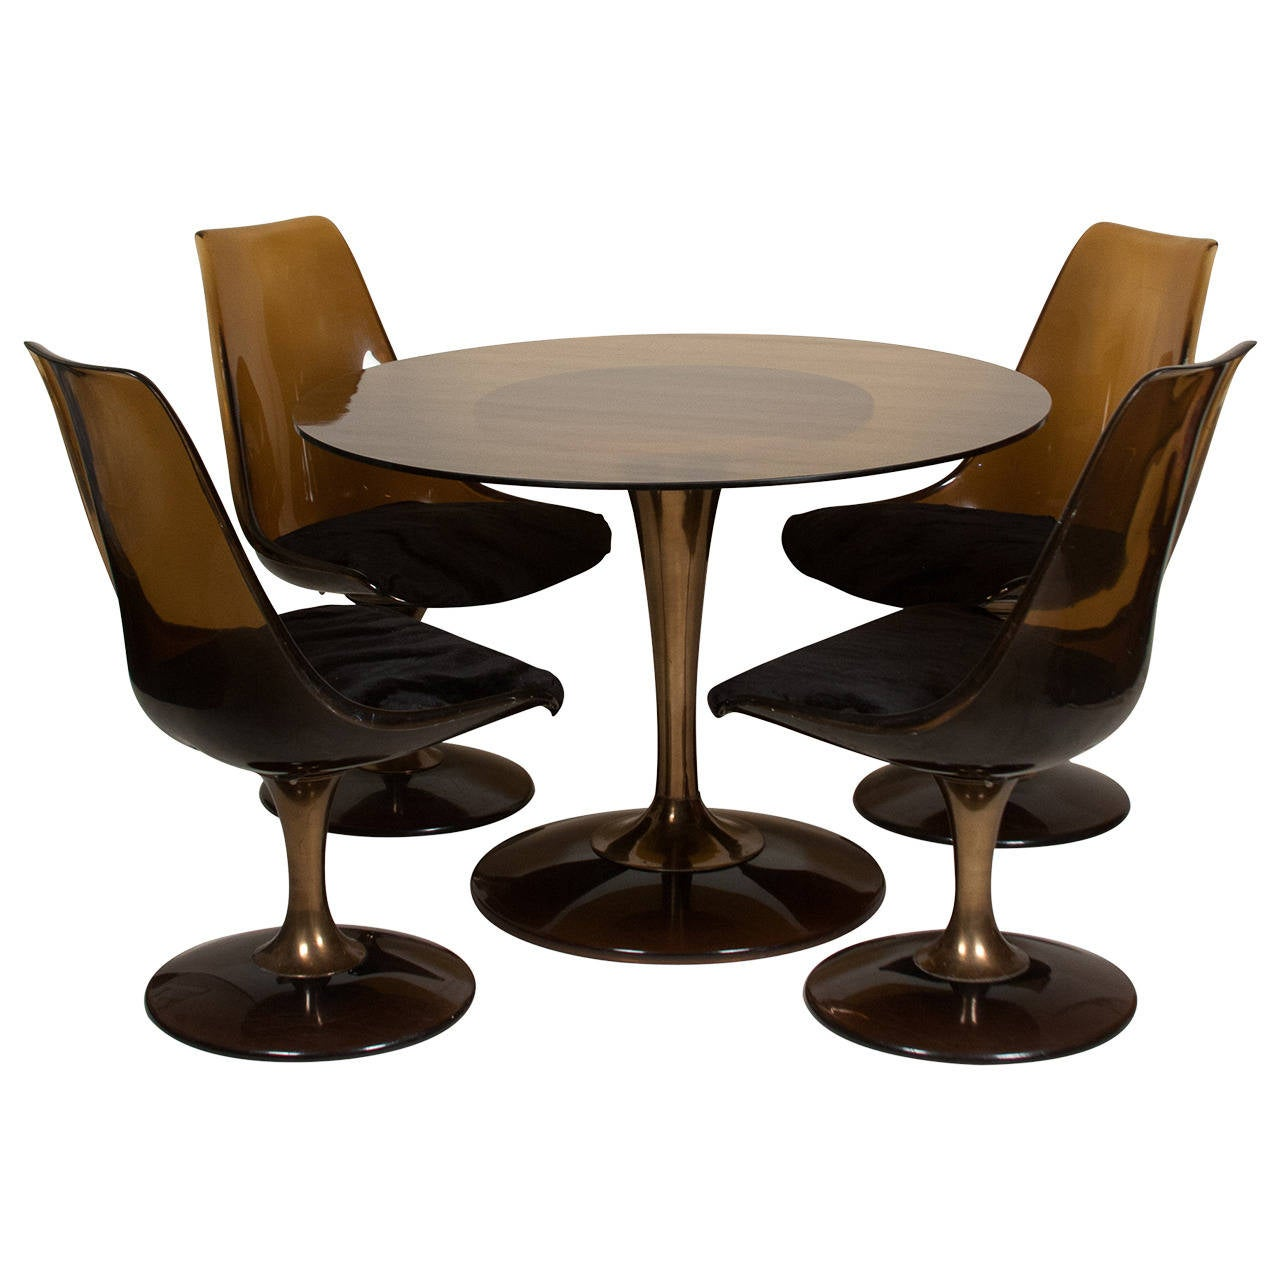 Amber glass top tulip dining table and chairs for sale at for Dining chairs and tables